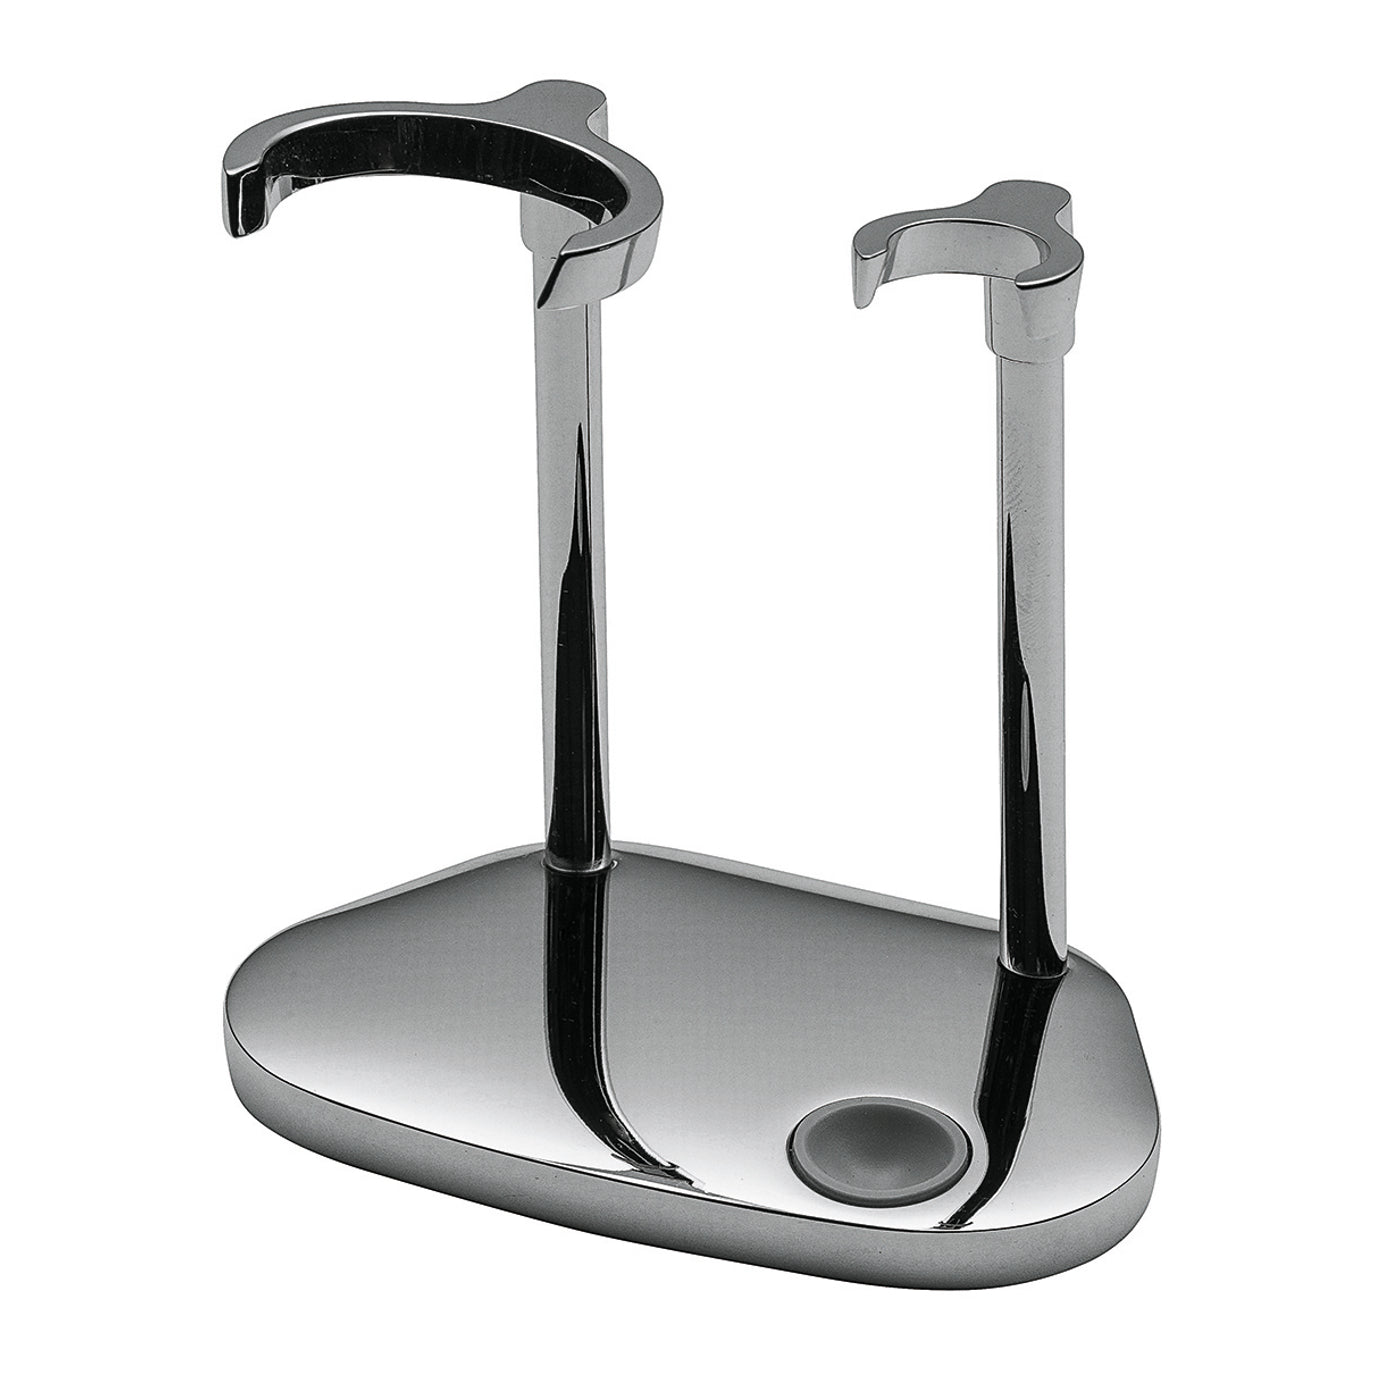 Boker Chrome Stand for Razor and Shaving Brush